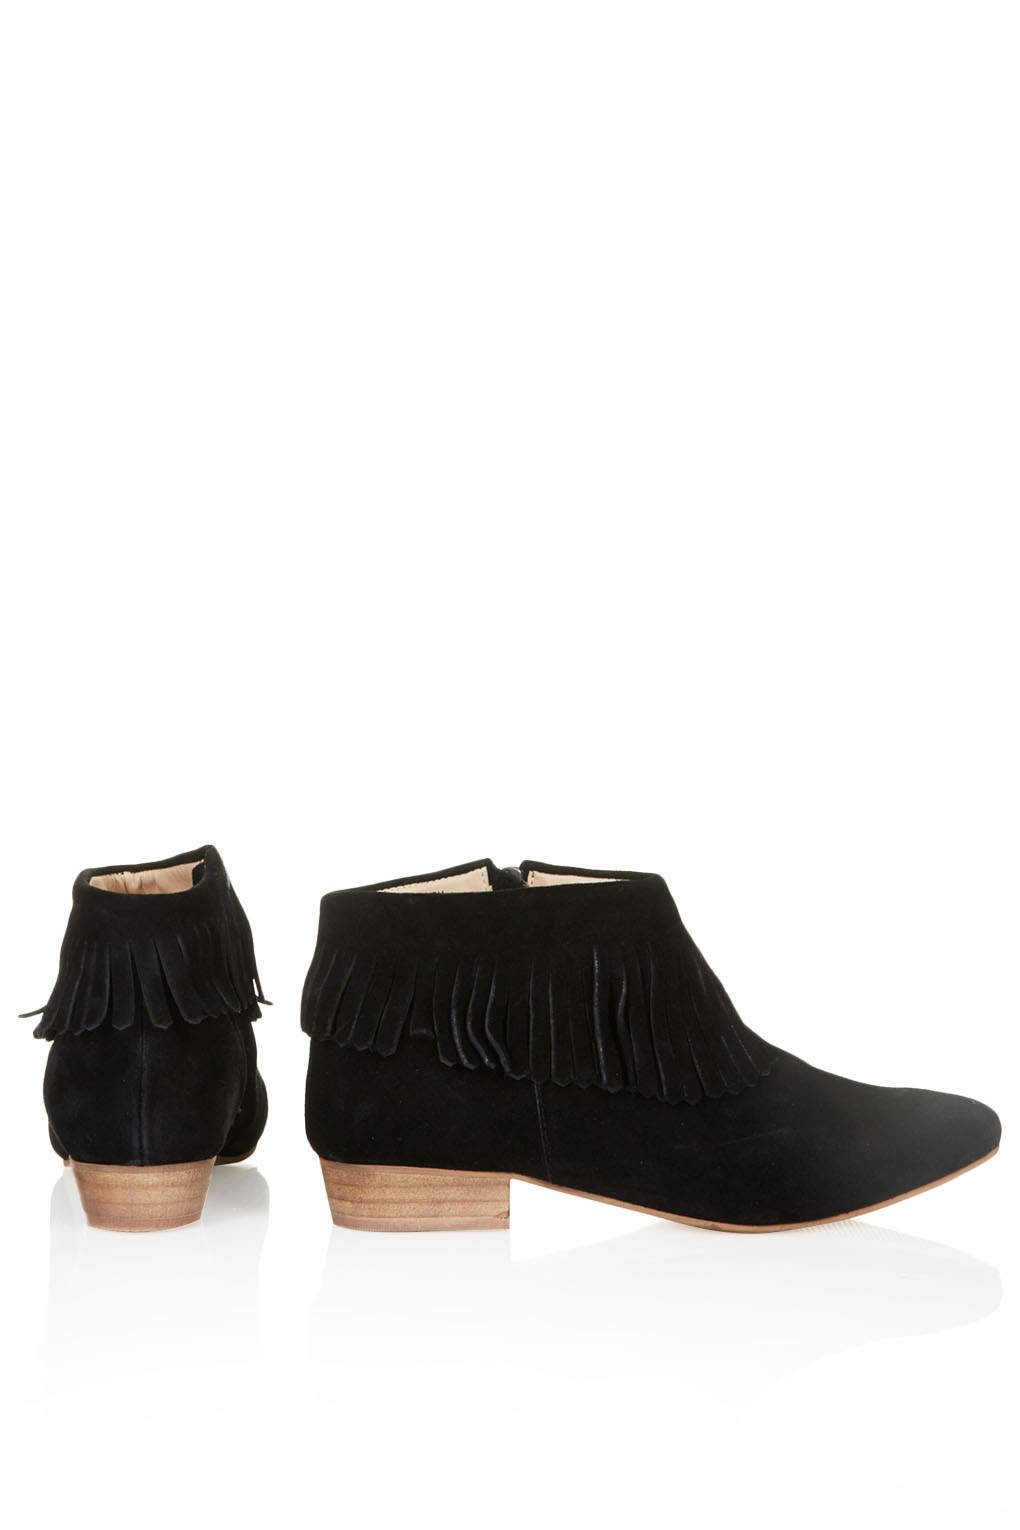 Topshop Womens Blinked Fringed Ankle Boots Black in Black | Lyst